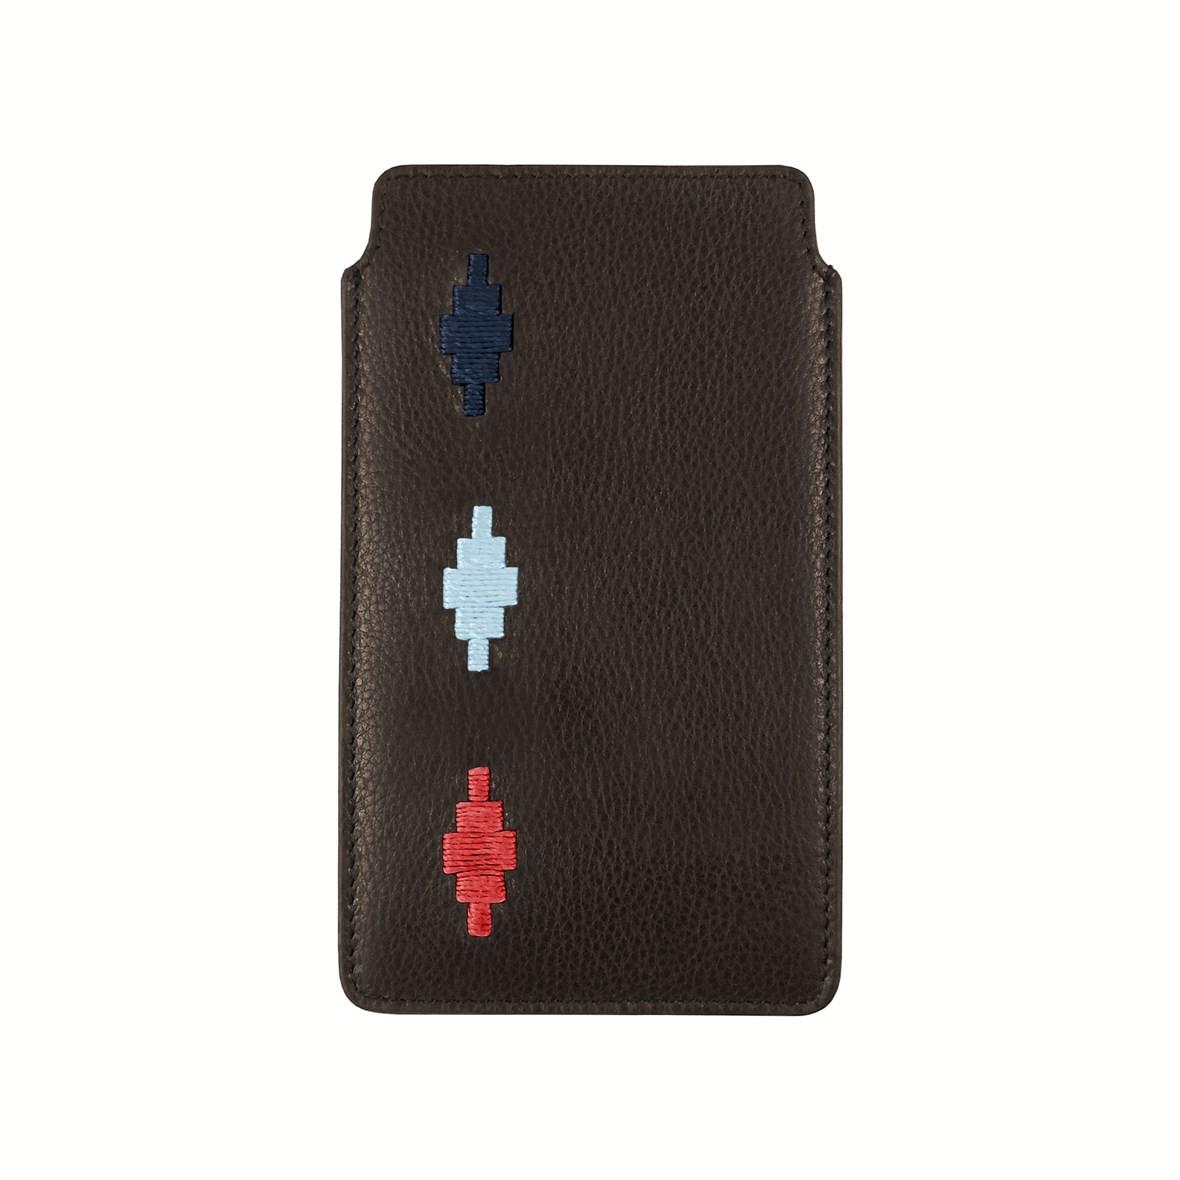 Phone, Tablet and Laptop Cases